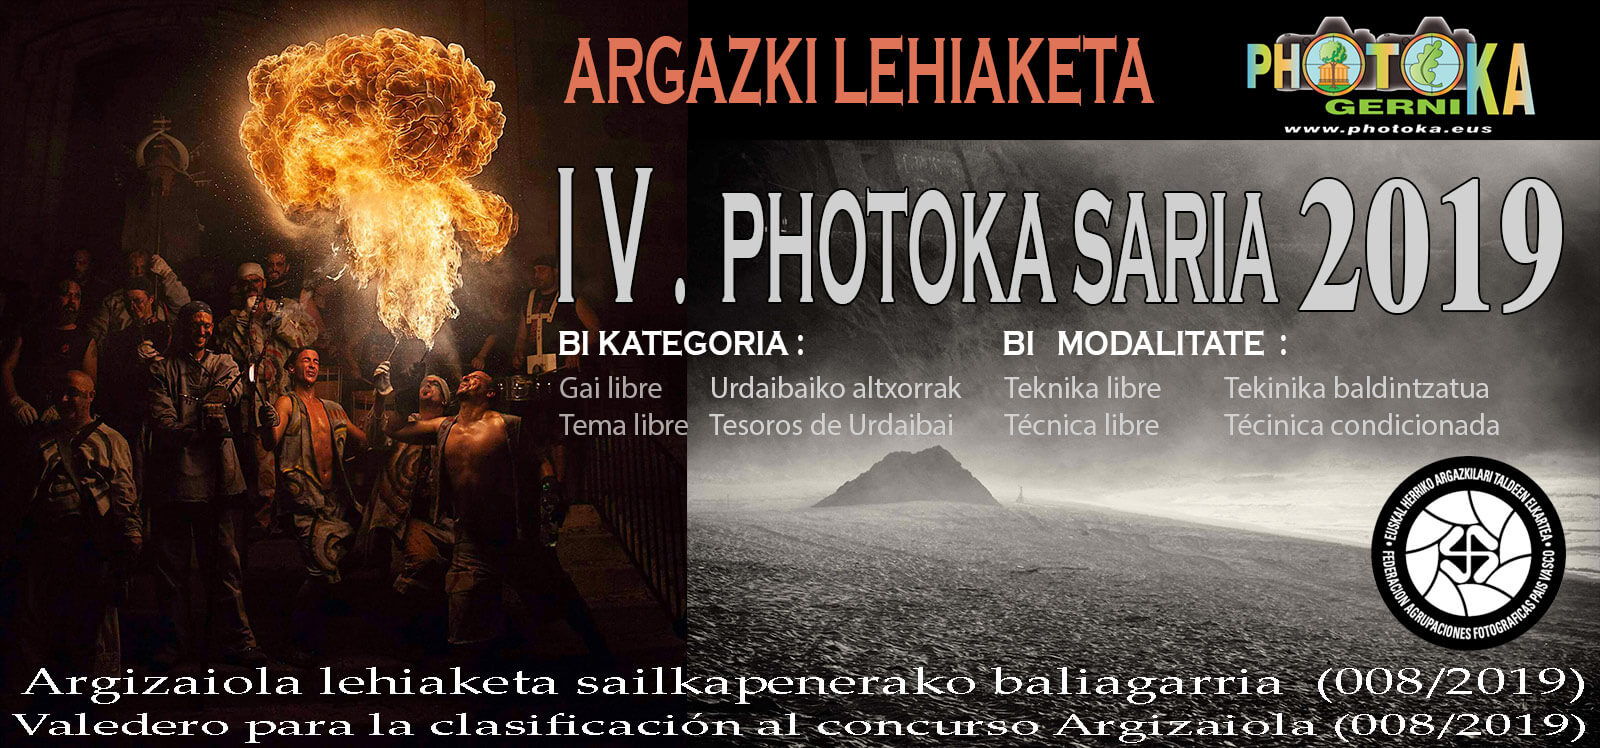 https://photoka.eus/iv-trofeo-photoka-saria-2019-bases